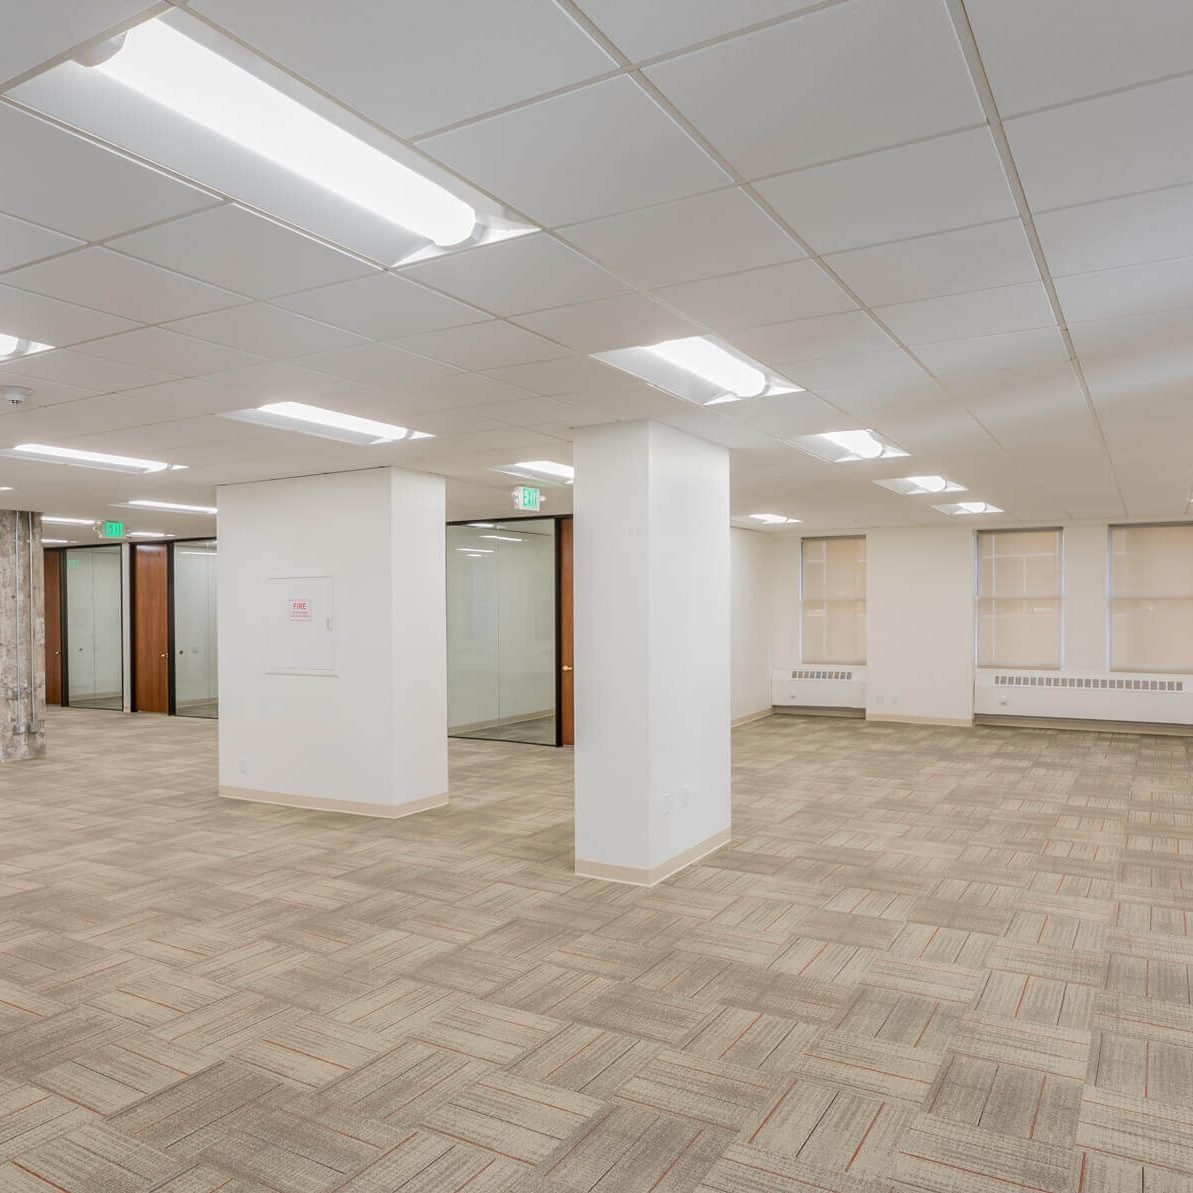 a large room with white concrete pillars and wooden flooring